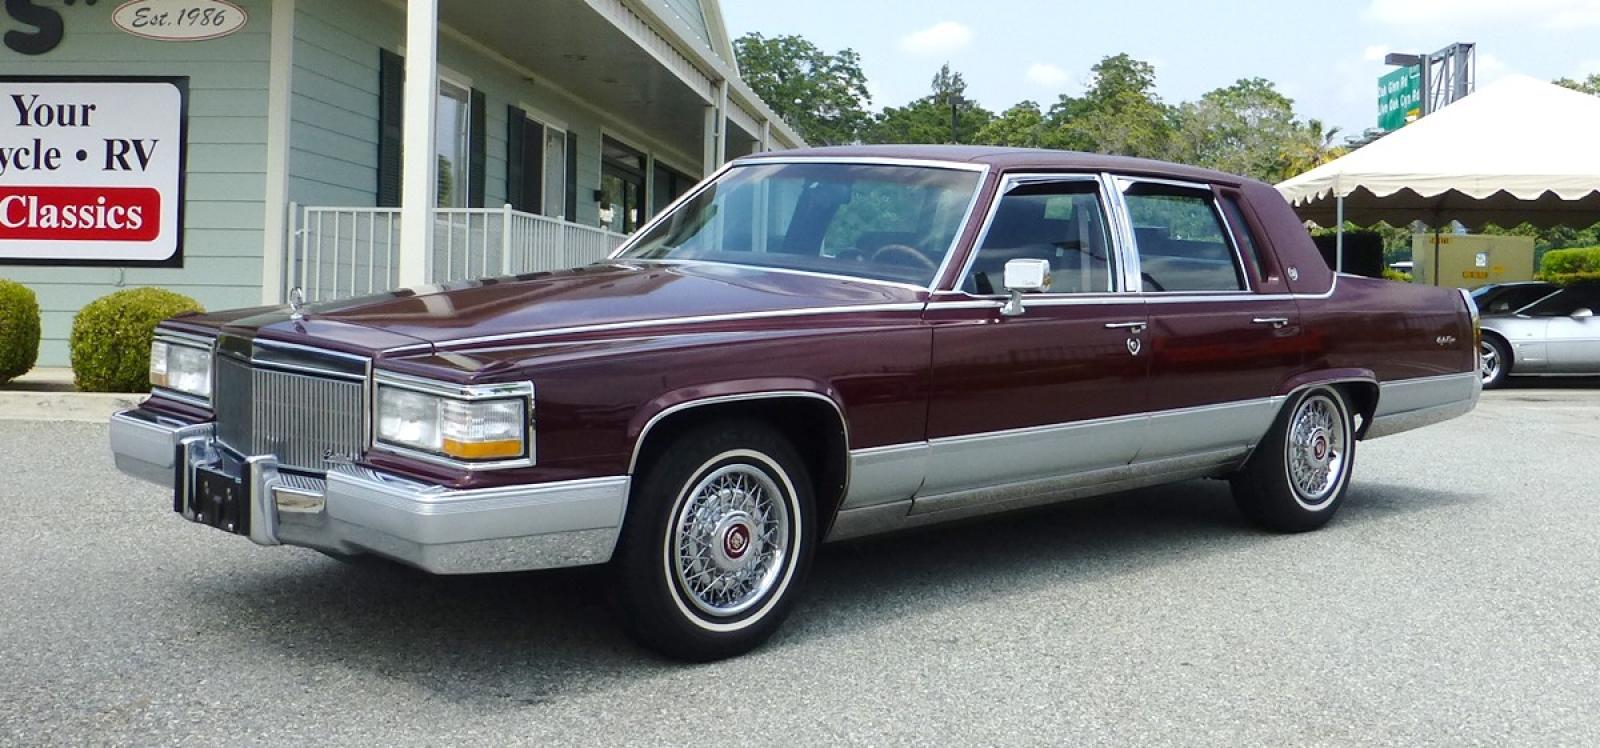 1991 Cadillac Brougham Information And Photos Zombiedrive Fuse Box 800 1024 1280 1600 Origin